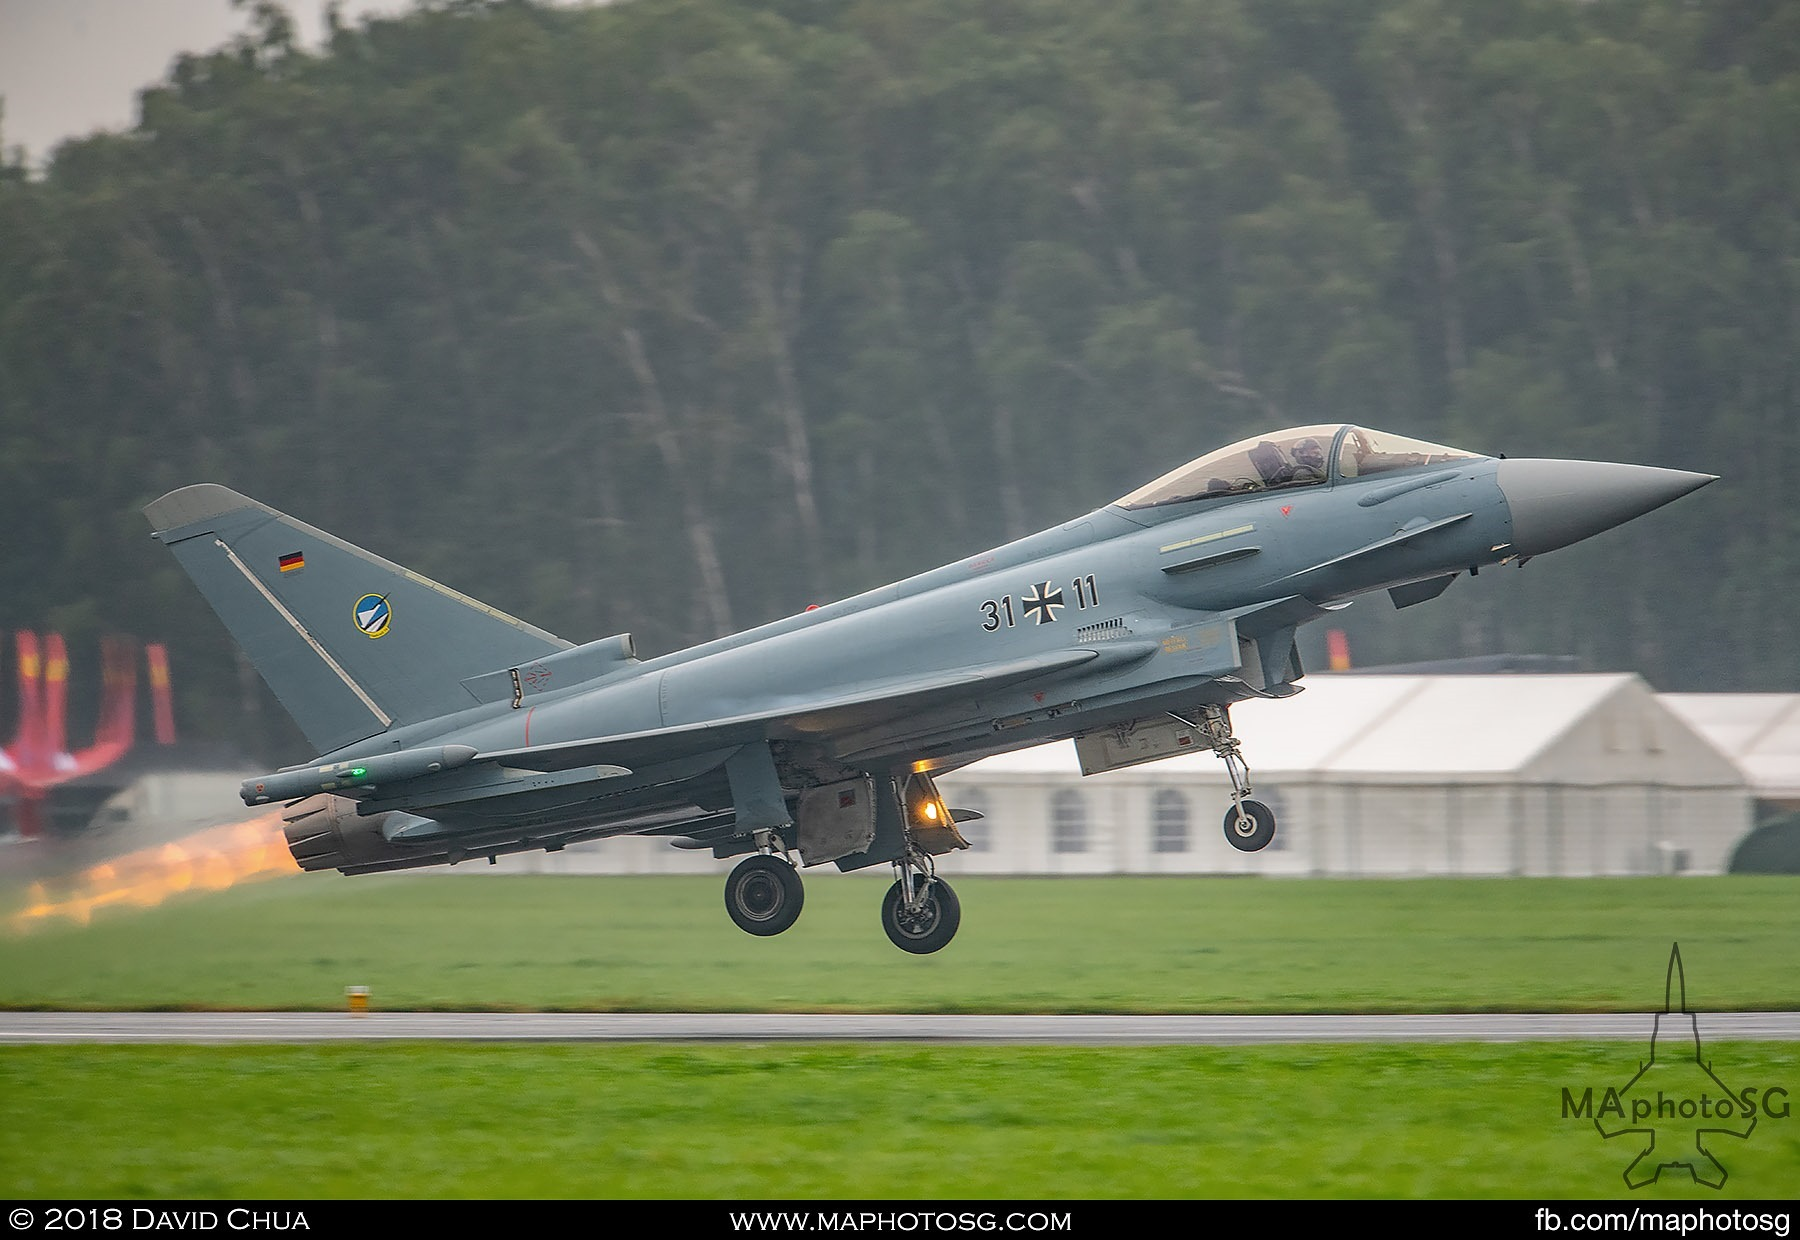 38. Luftwaffe Eurofighter Typhoon rotates in full afterburners